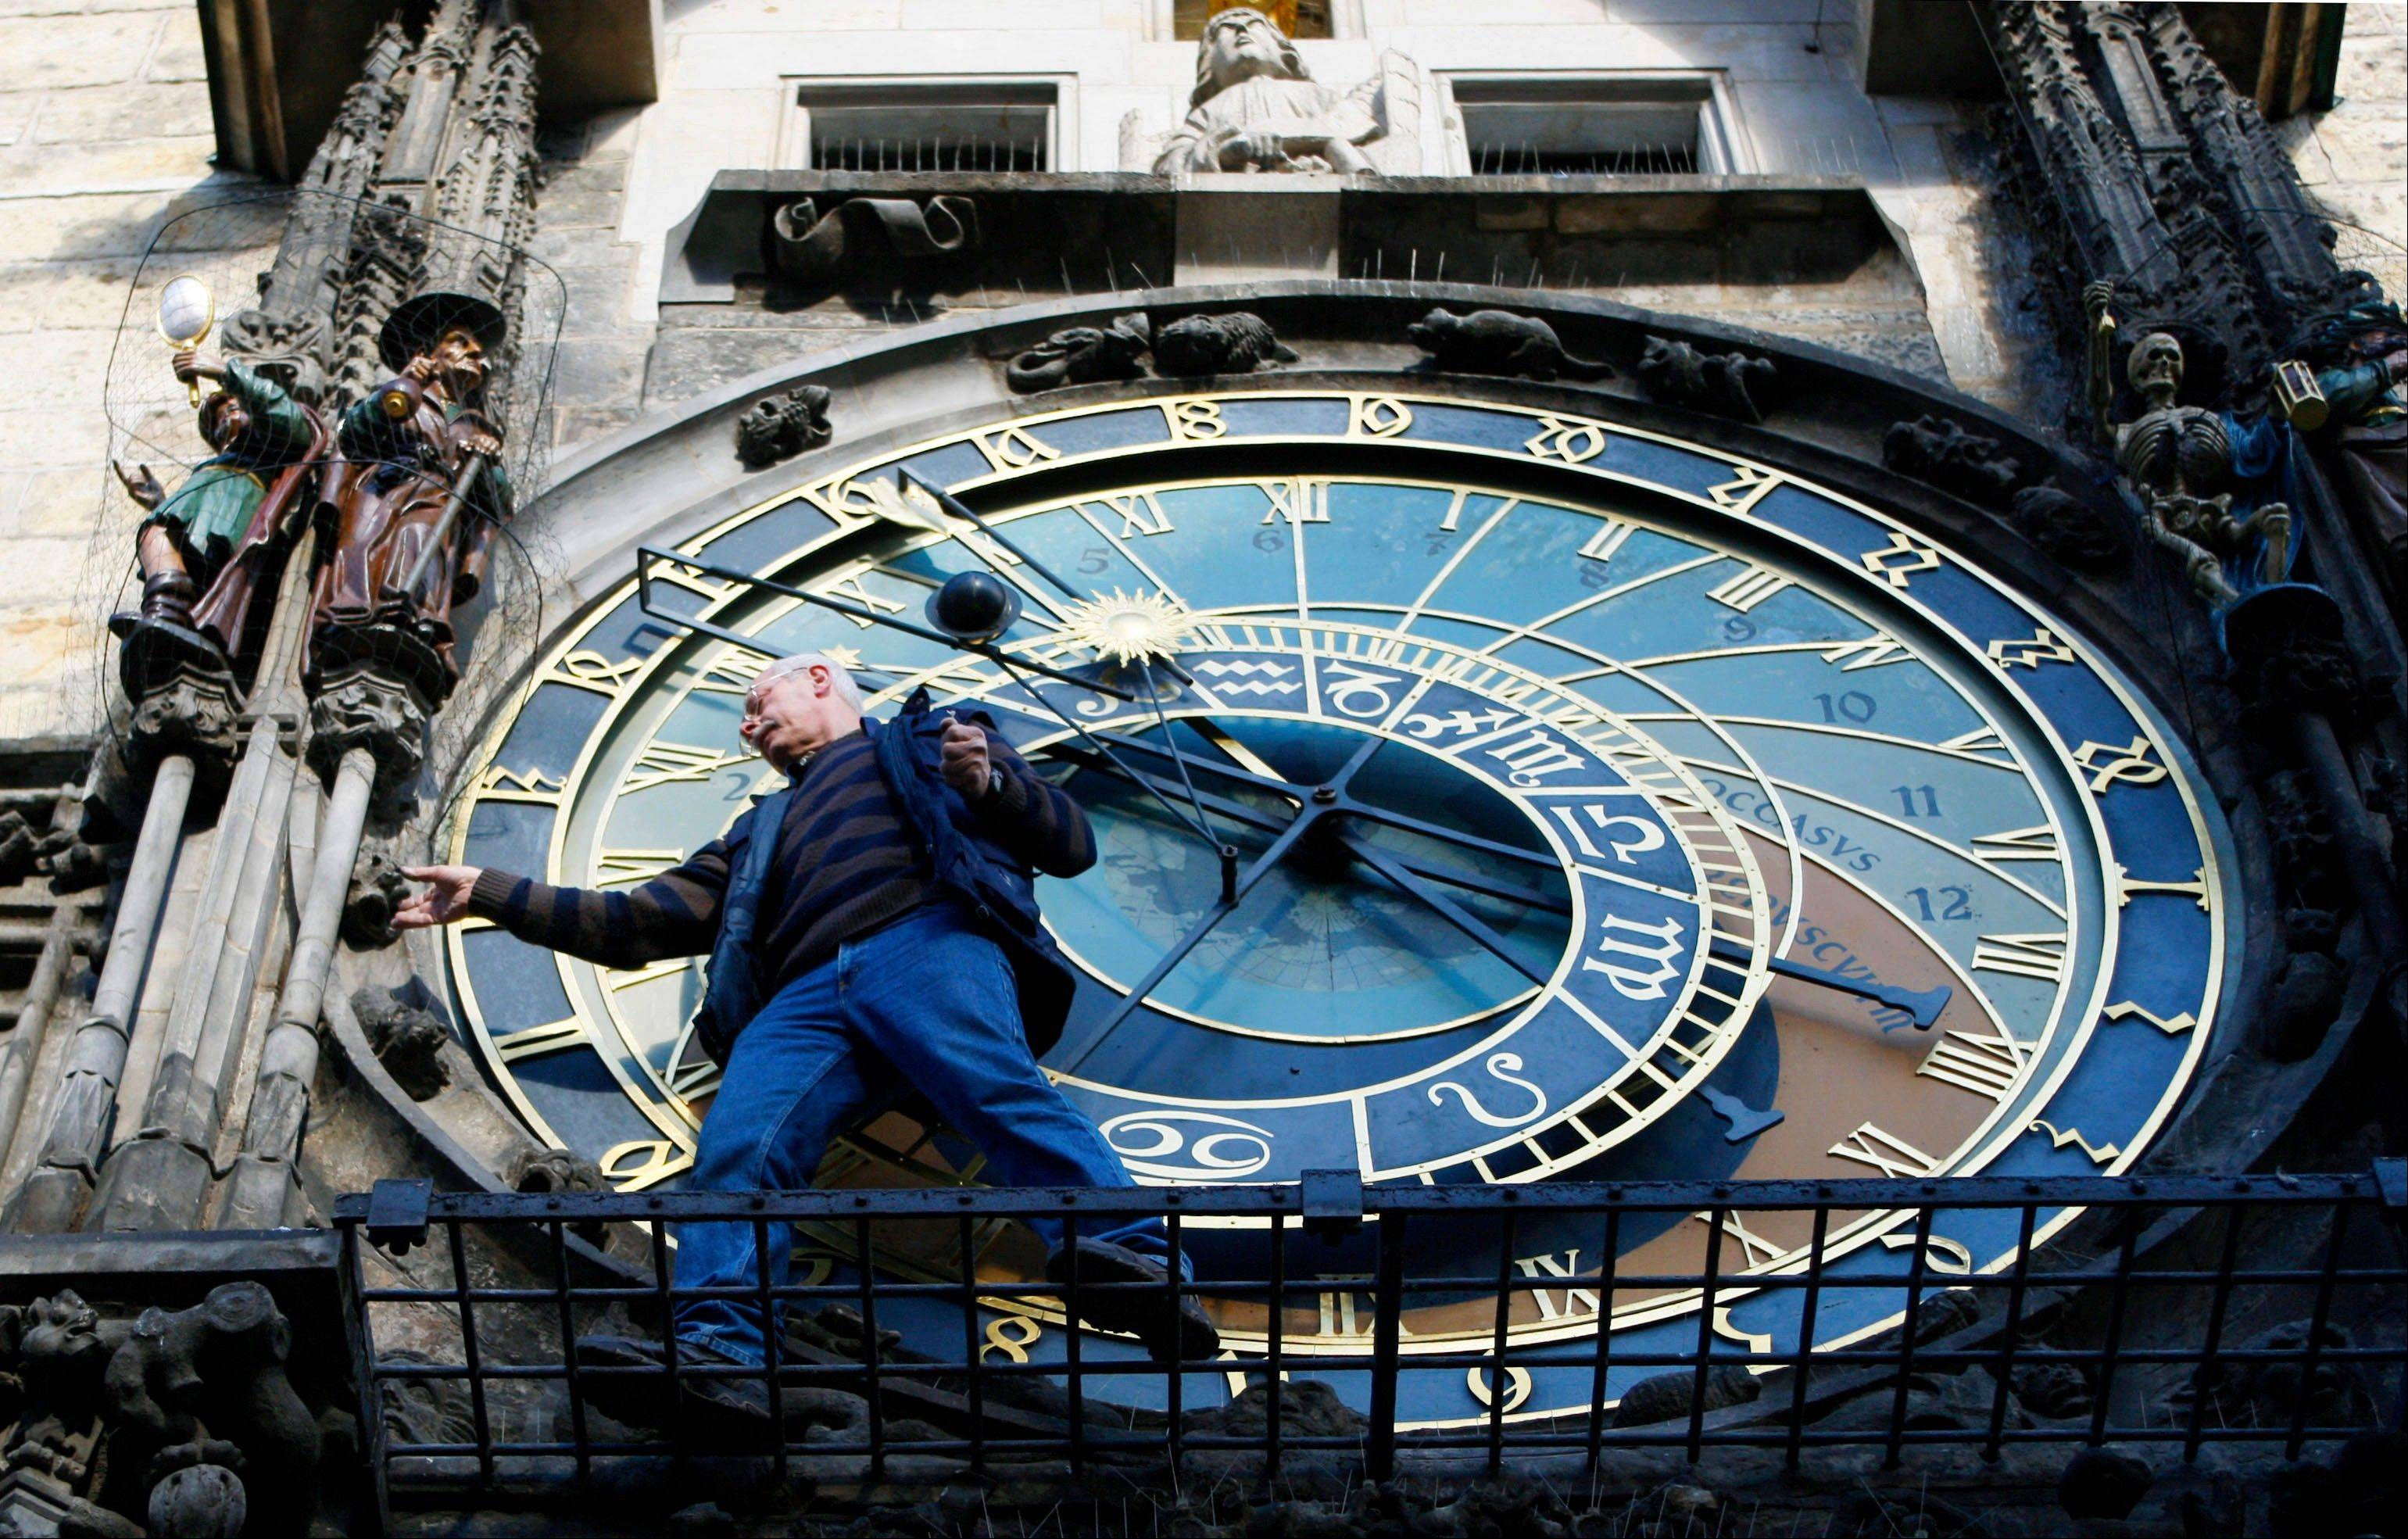 Petr Skala performs his weekly maintenance of the famous Astronomical clock at the Old Town Square.